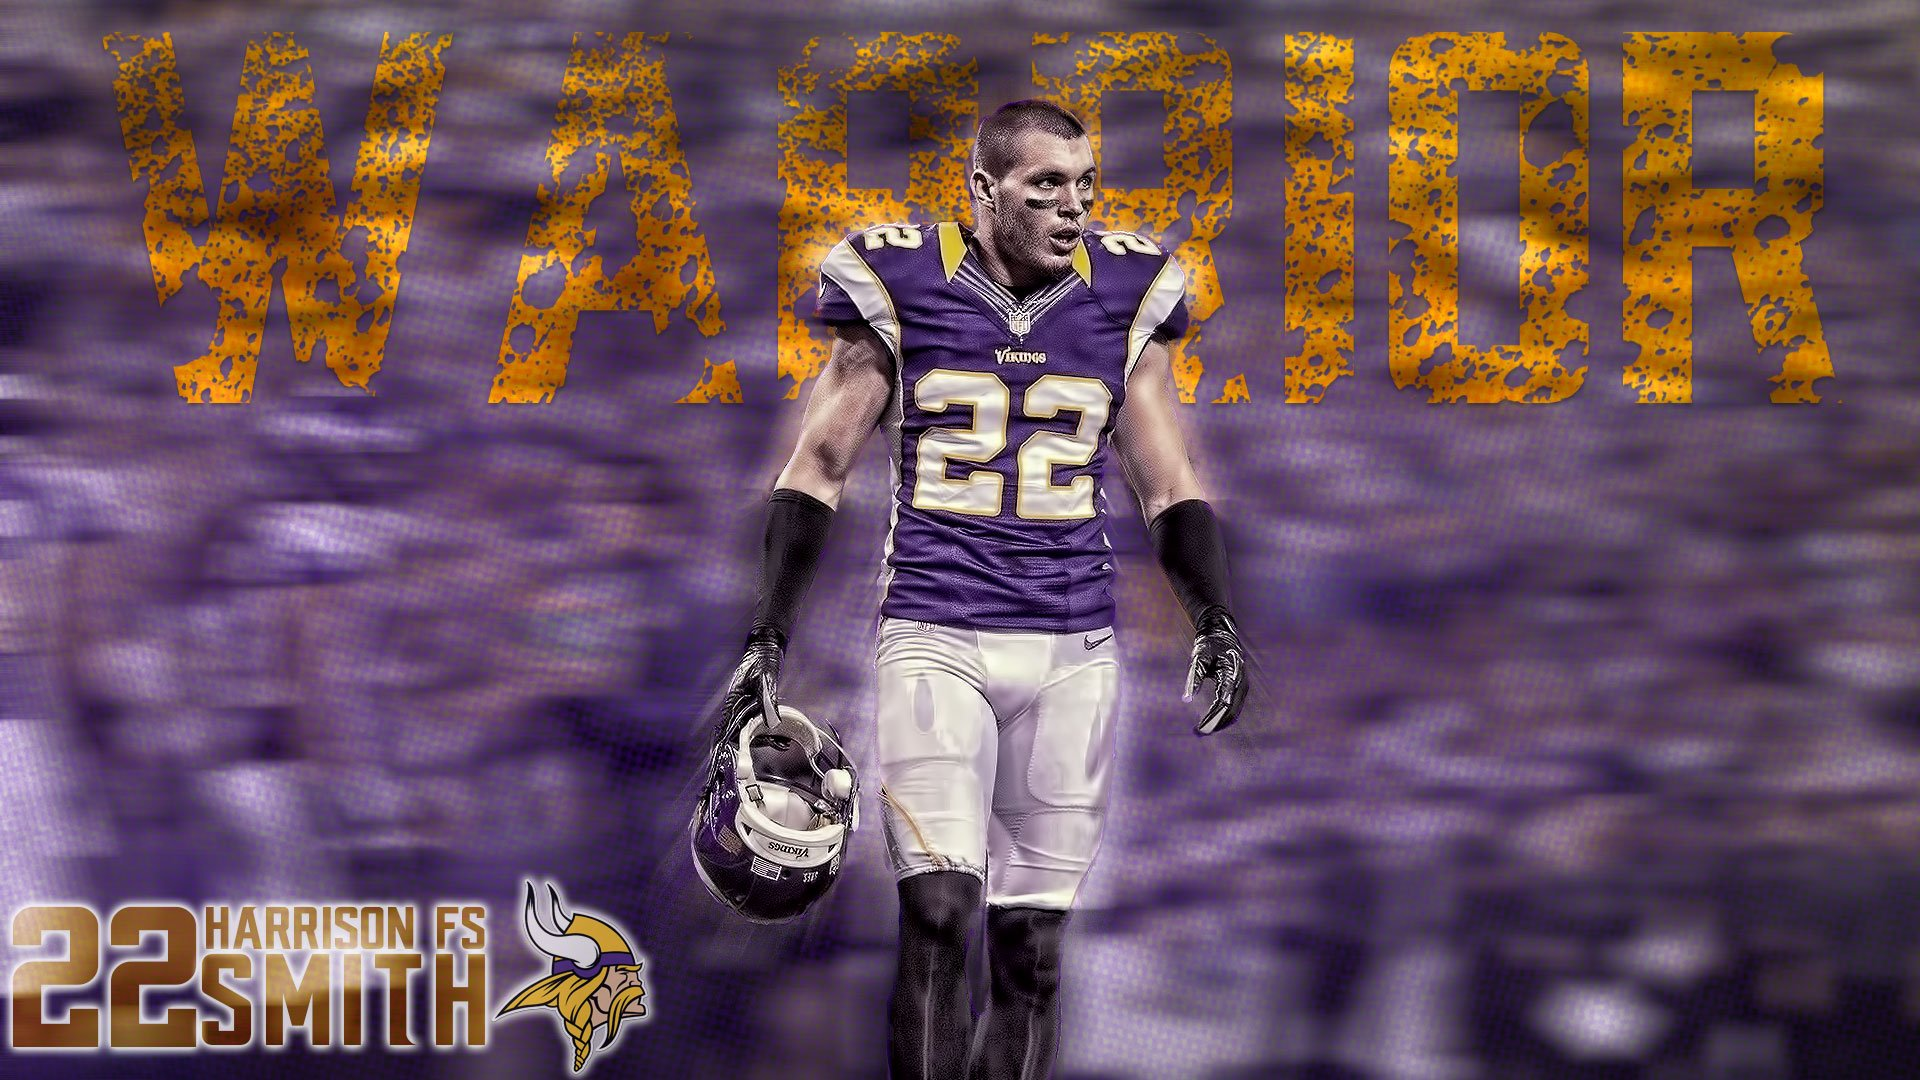 Someone asked for a Harrison Smith wallpaper and whenever I think 1920x1080